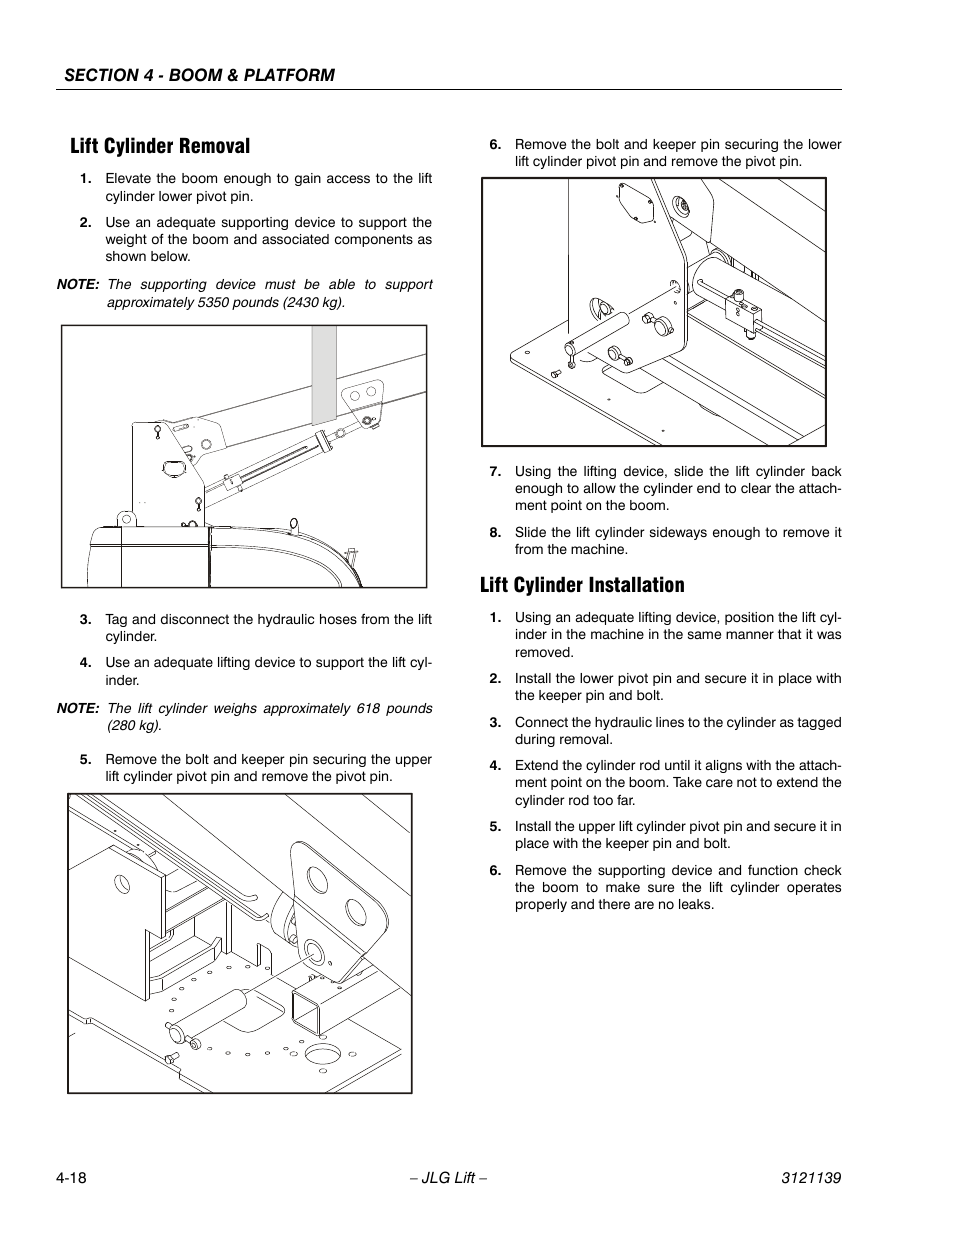 Lift Cylinder Removal  Lift Cylinder Installation